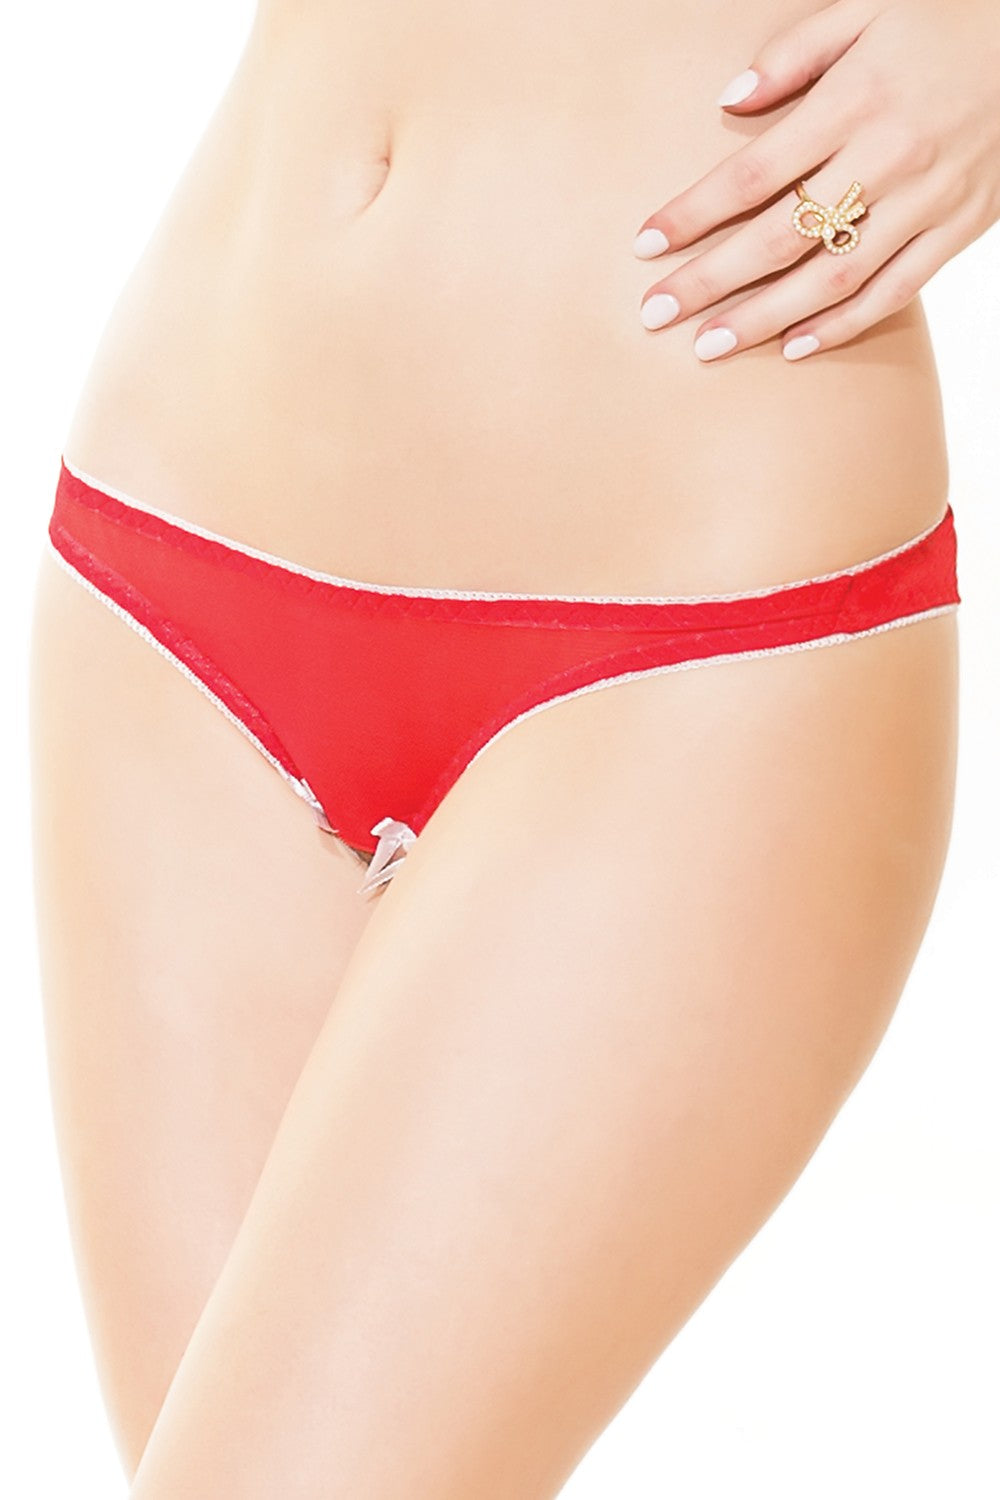 Crotchless Holiday Panties with Jingle Bells (3412)